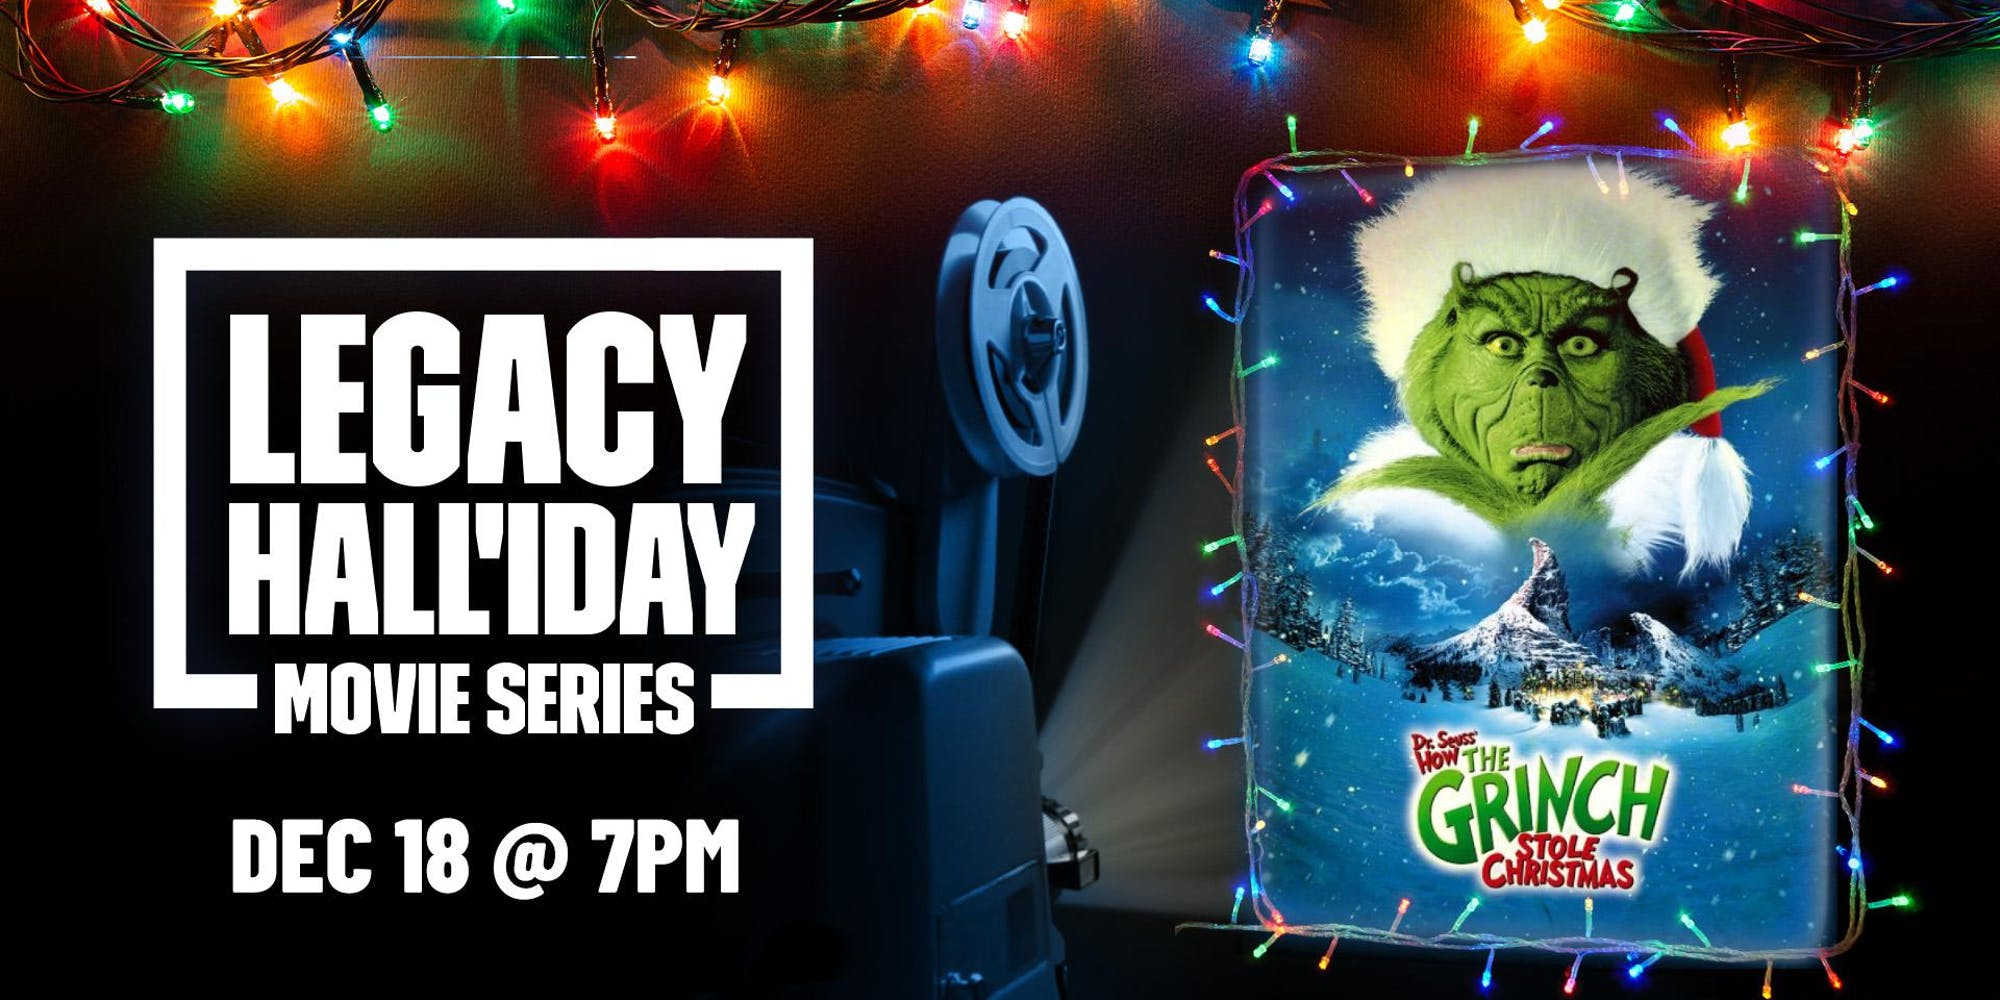 The Grinch Christmas & Sing-Along 2020 Legacy Hall'iday Movie Series: How the Grinch Stole Christmas